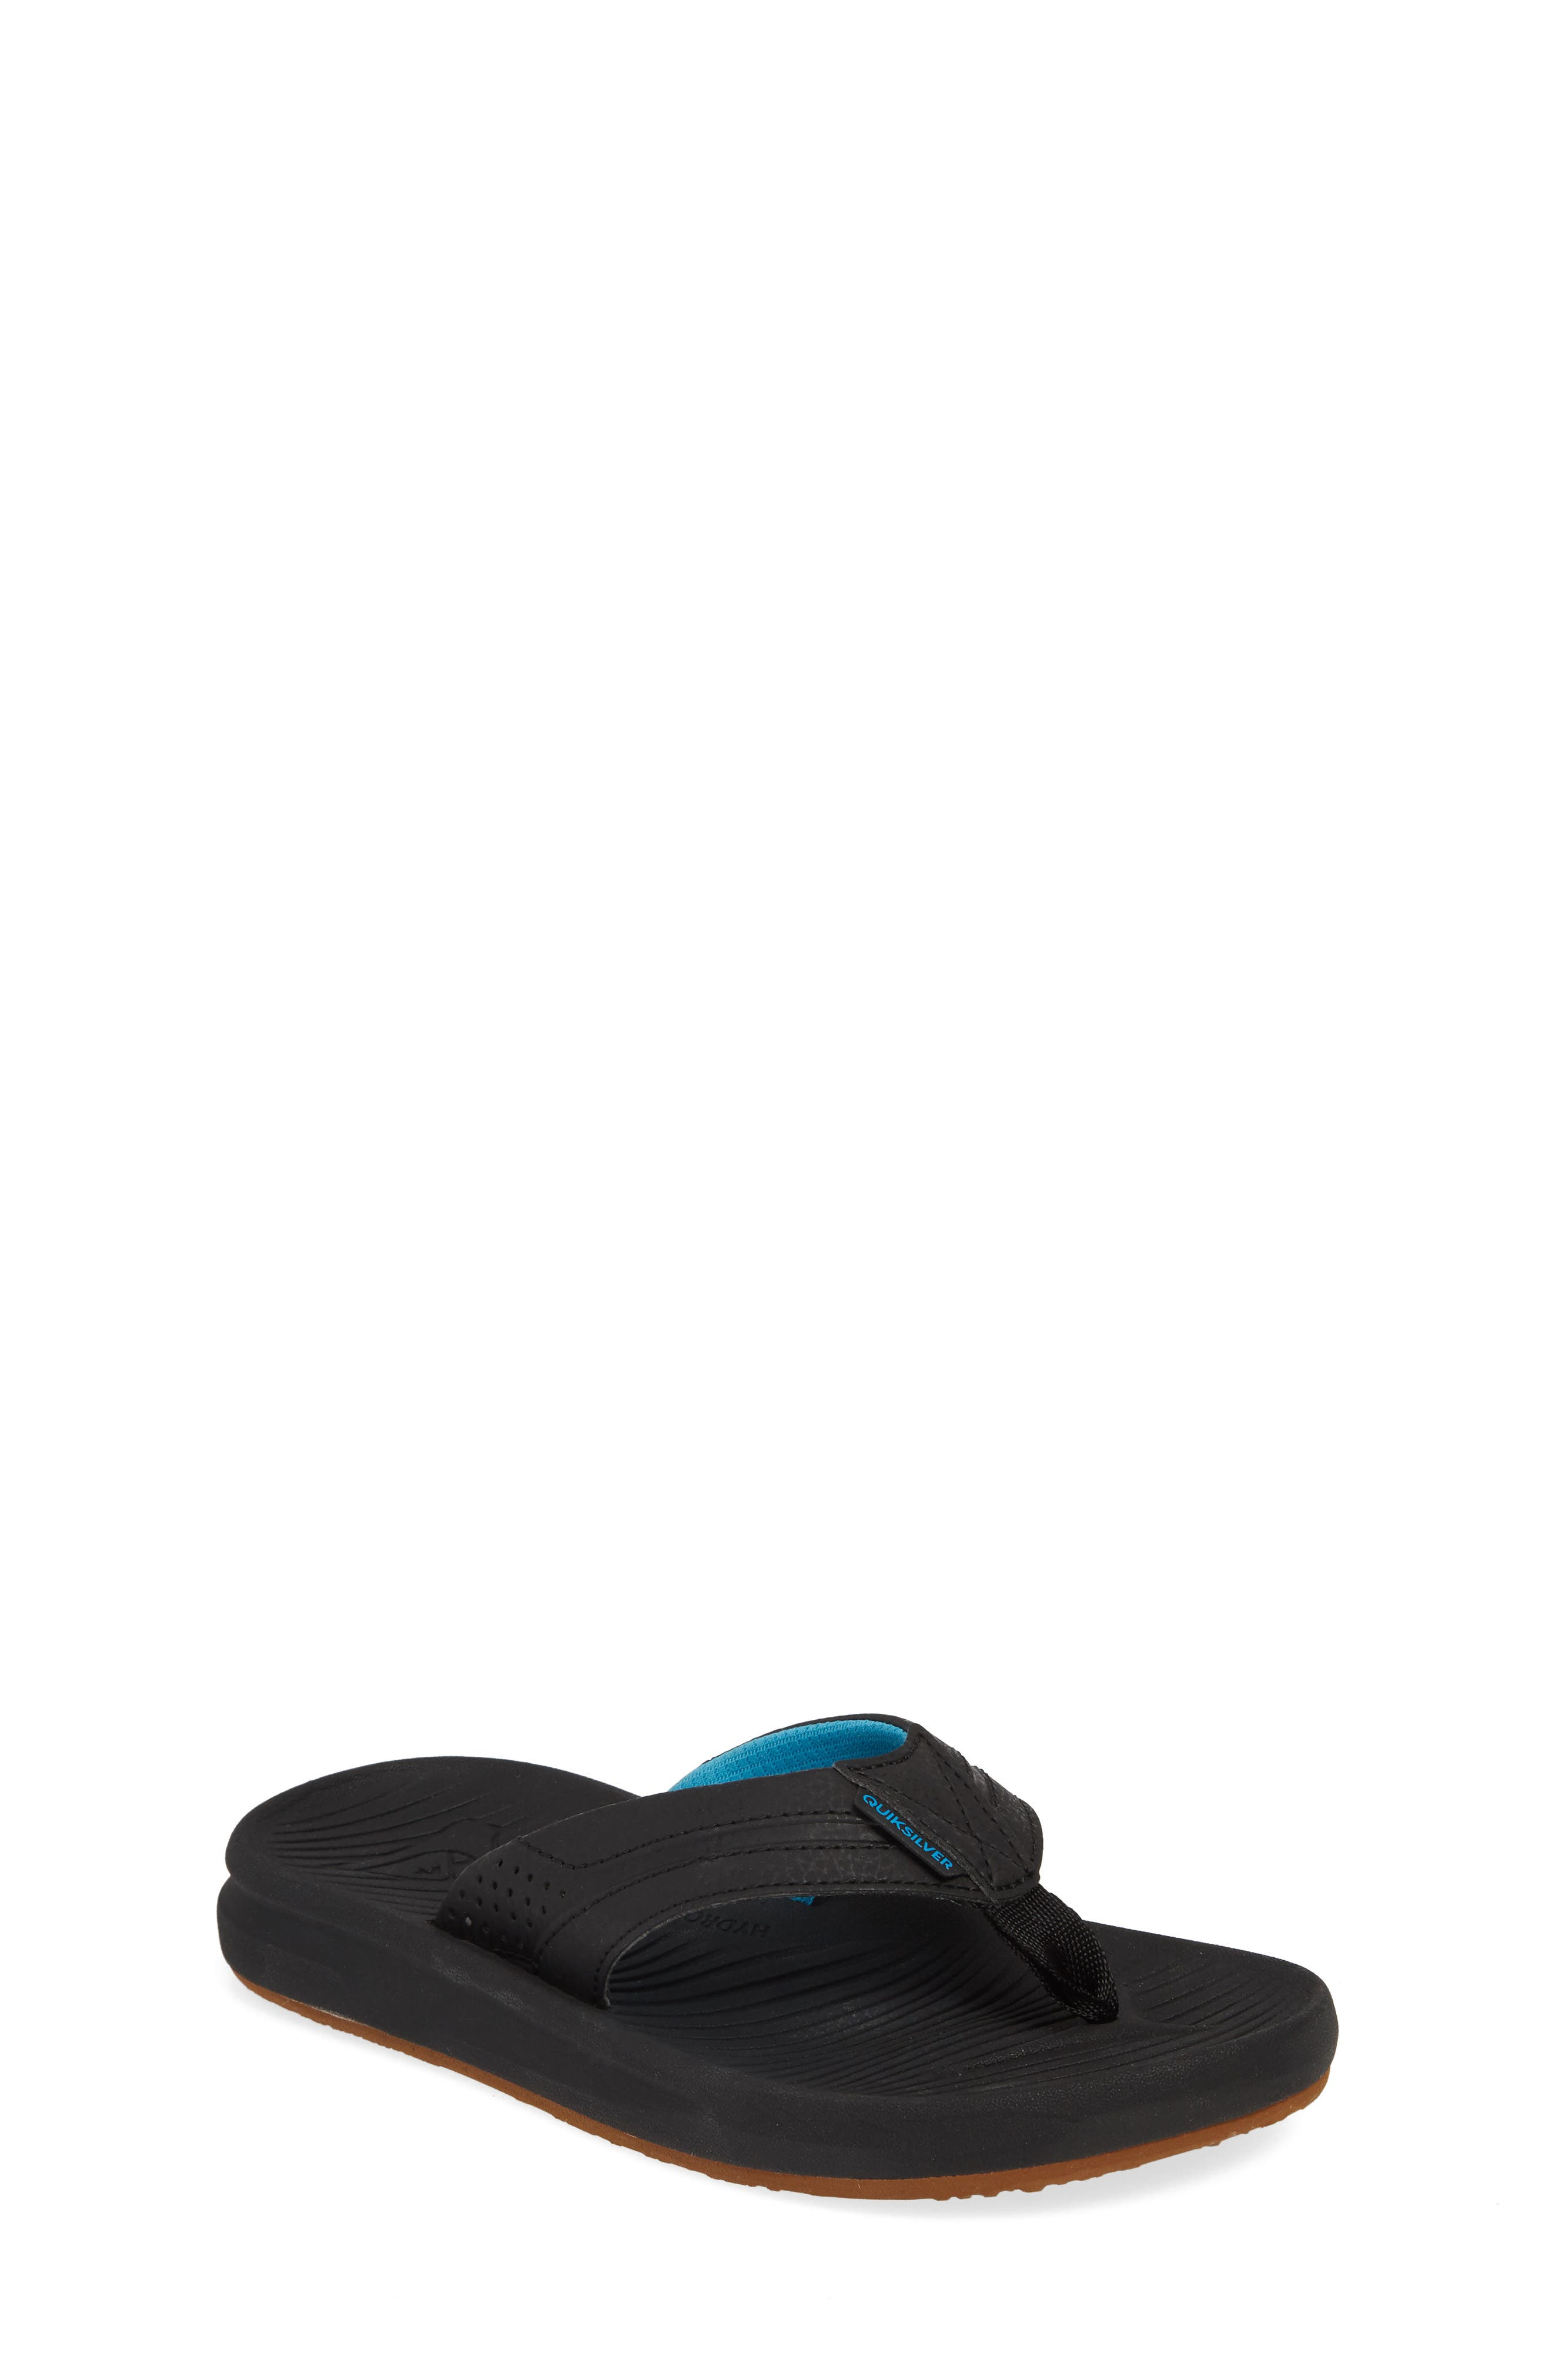 QUIKSILVER Oasis Flip Flop, Main, color, BLACK/ BLACK/ BROWN